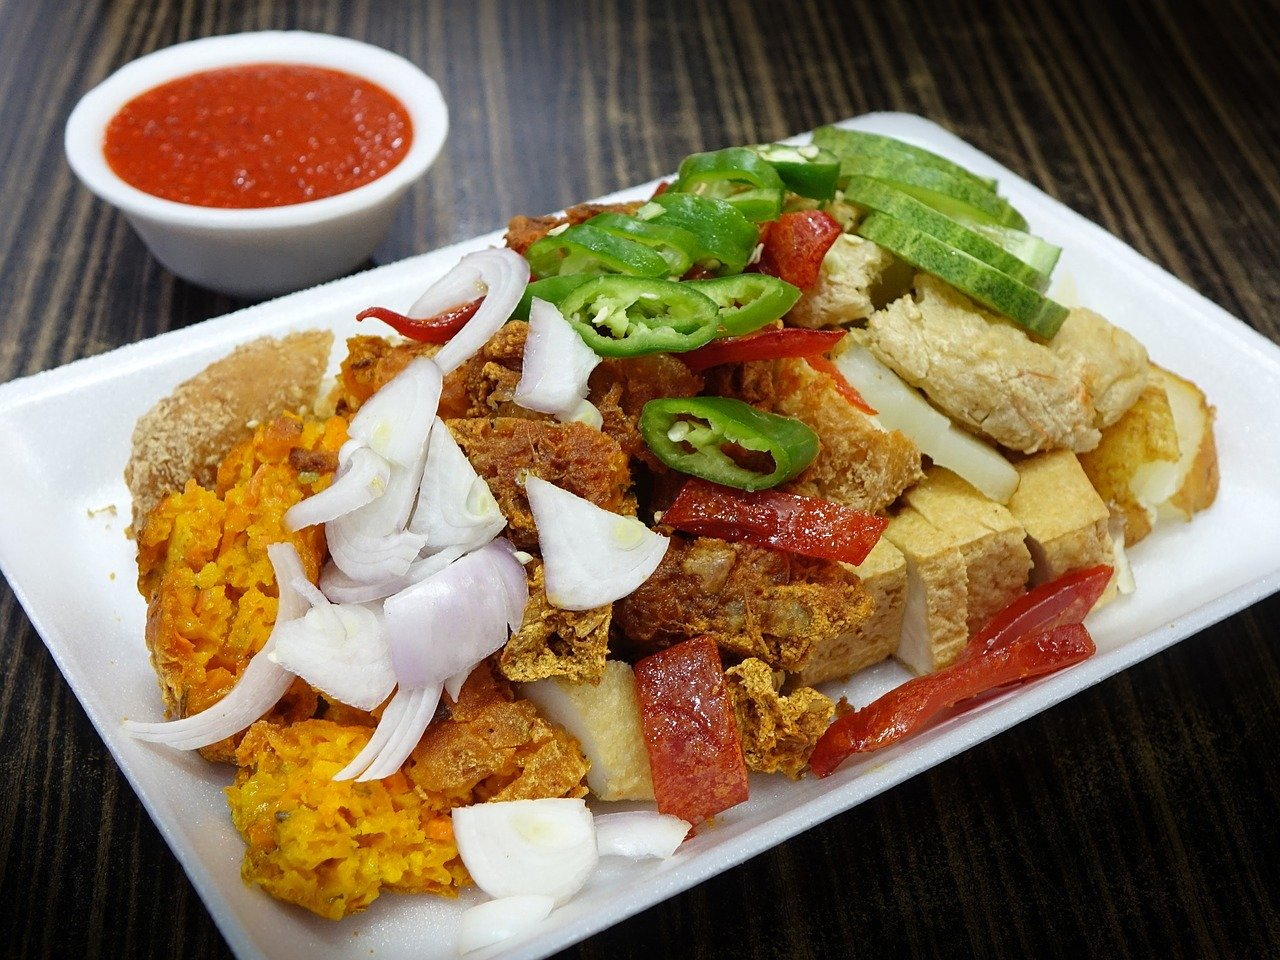 Wondering what to eat in Singapore? Indian Rojak is one of the best Singaporean dishes to try. Discover more in this article - read it now!